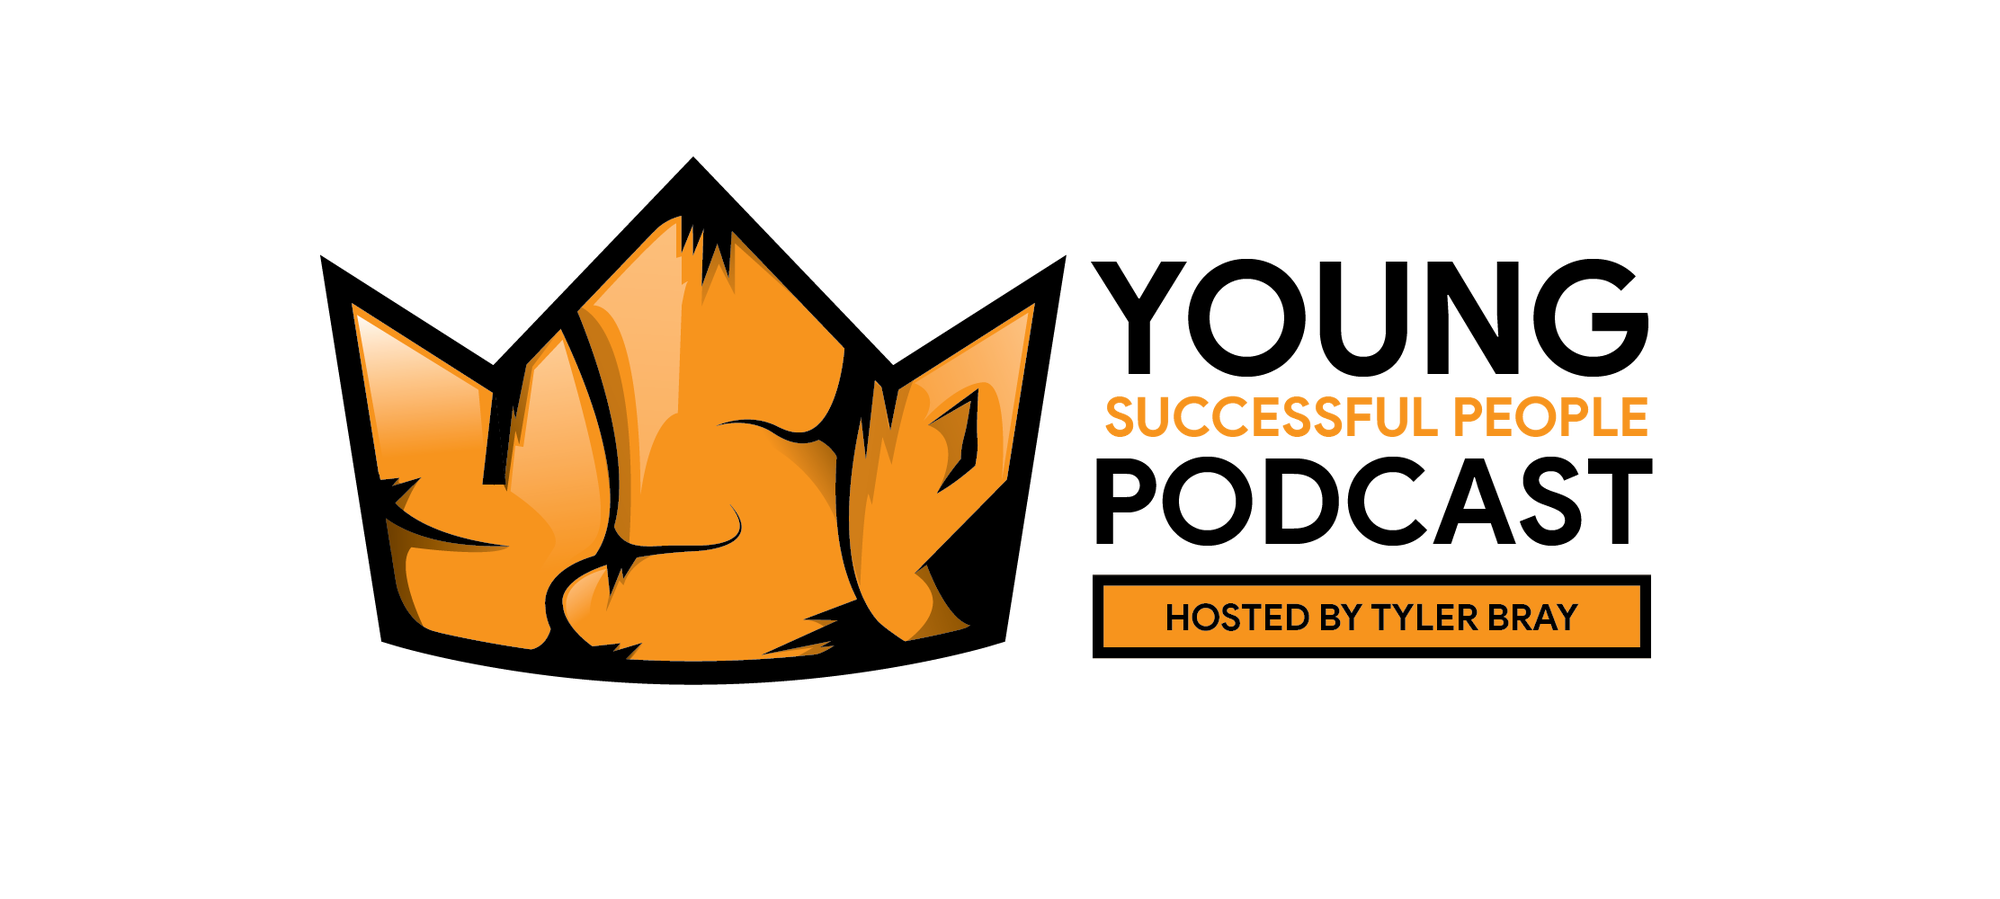 Young Successful people branding for community and podcast by marketography